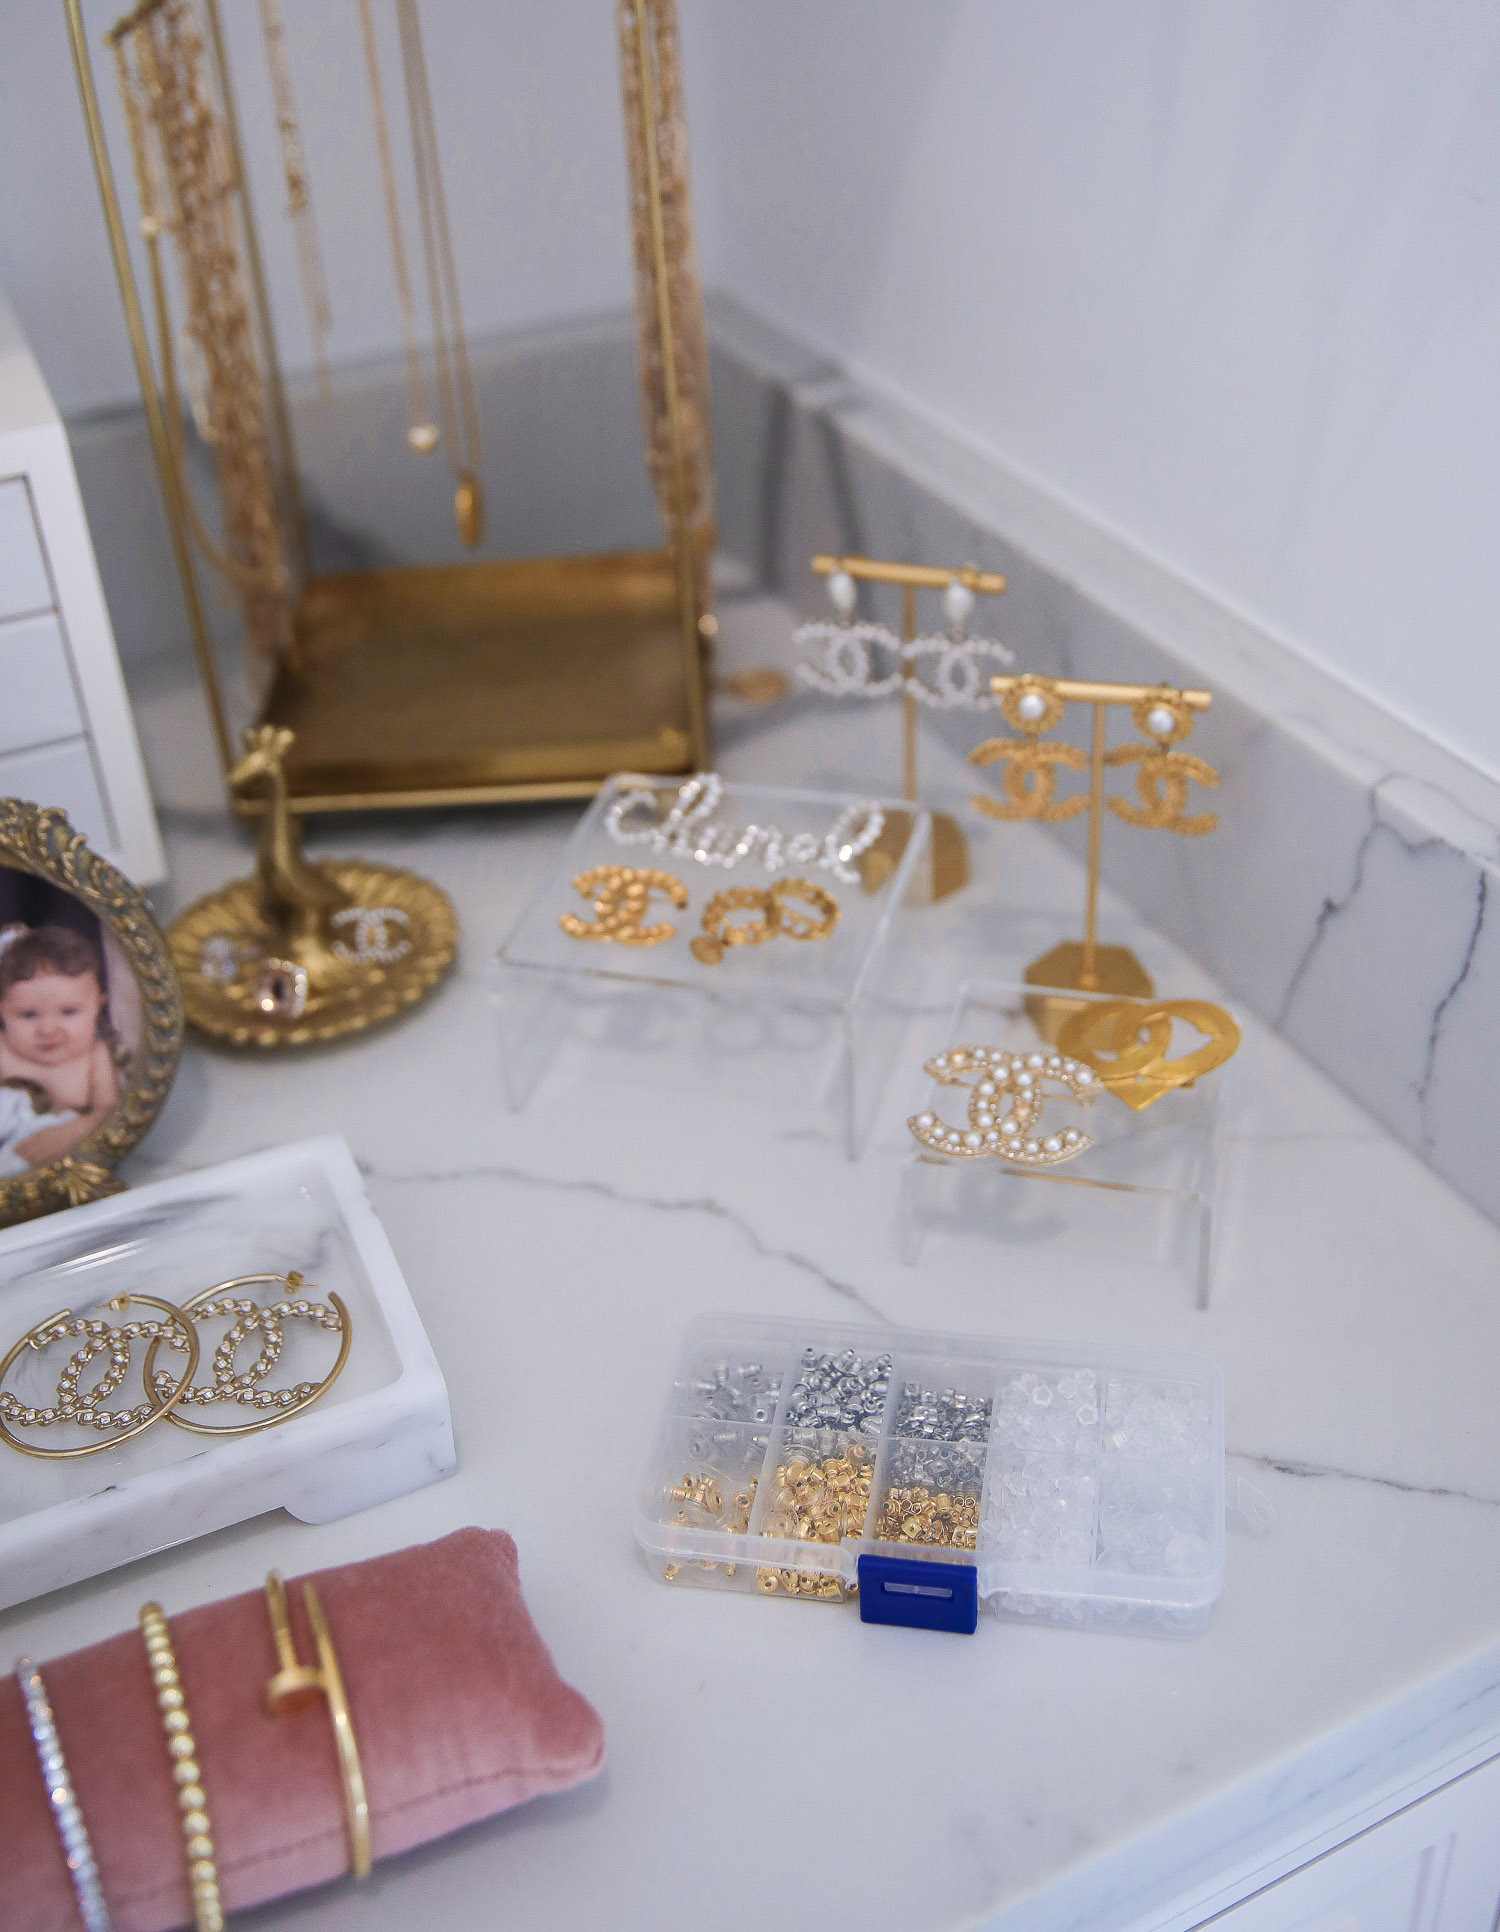 amazon earring backs, Chanel earrings 2021, amazon must haves Emily Gemma |Amazon Must Haves by popular US life and style blog, The Sweetest Thing: image of gold picture frames, gold jewelry holders, white jewelry box, pink velvet bracelet cushion, earring backs in a storage container, and gold necklace holder on a white marble counter top.